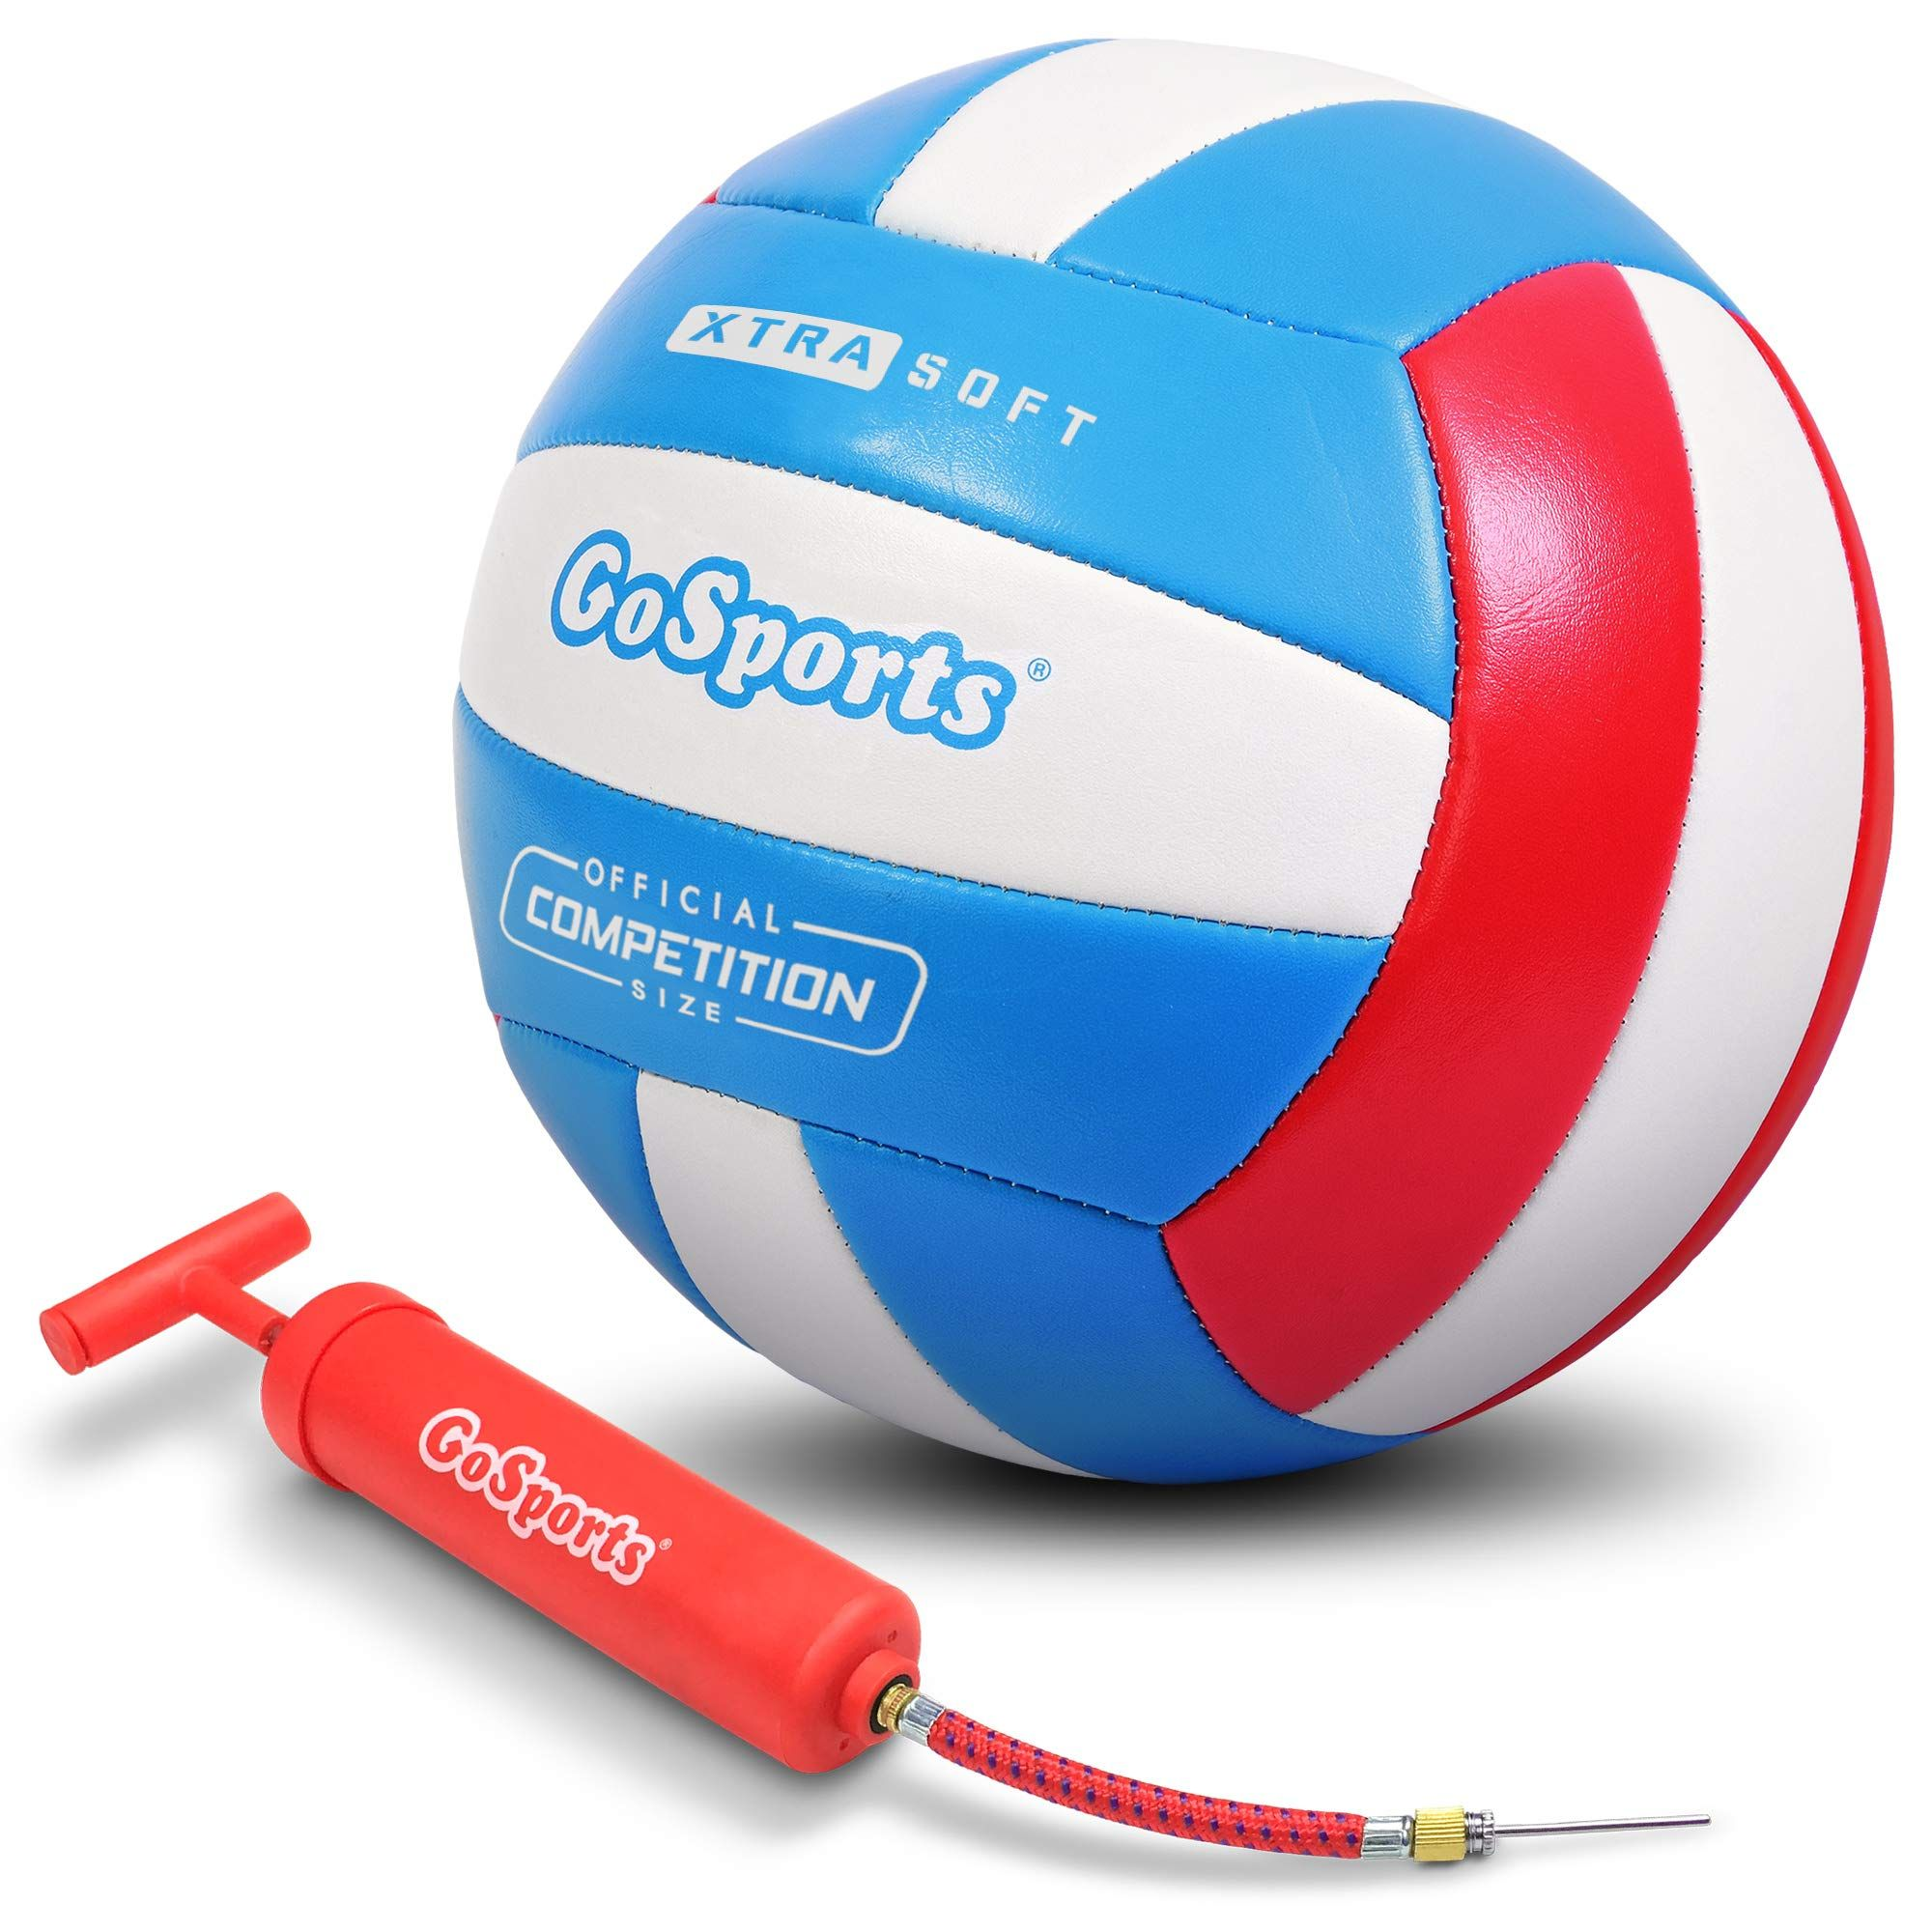 Gosports Soft Touch Recreational Volleyball Regulation Size For Indoor Or Outdoor Play Includes Ball Pump Choose Ball Pump Volleyball Air Pump